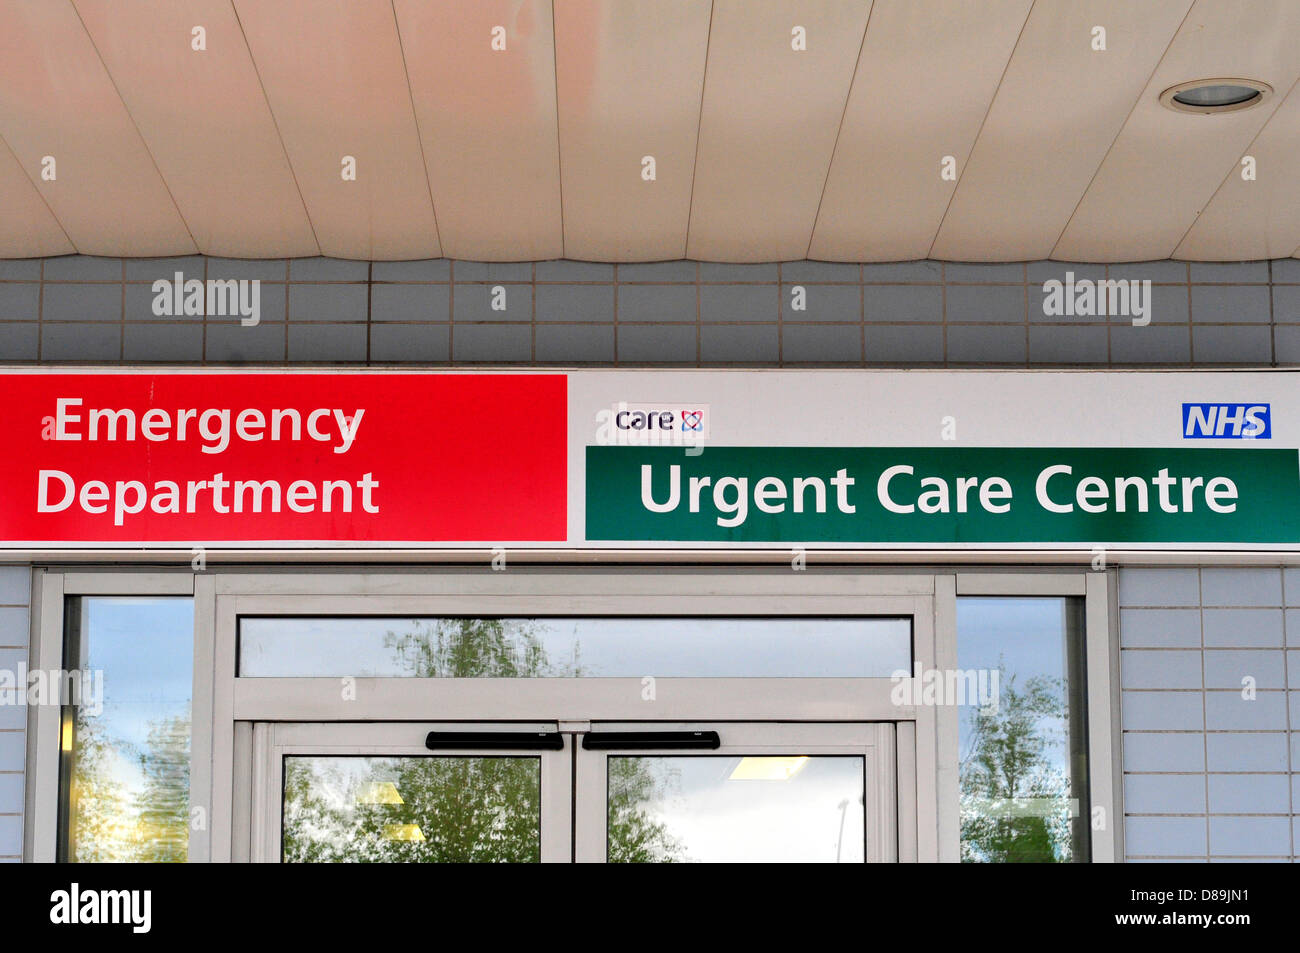 A sign of an emergency department in Middlesex hospital, London, UK - Stock Image